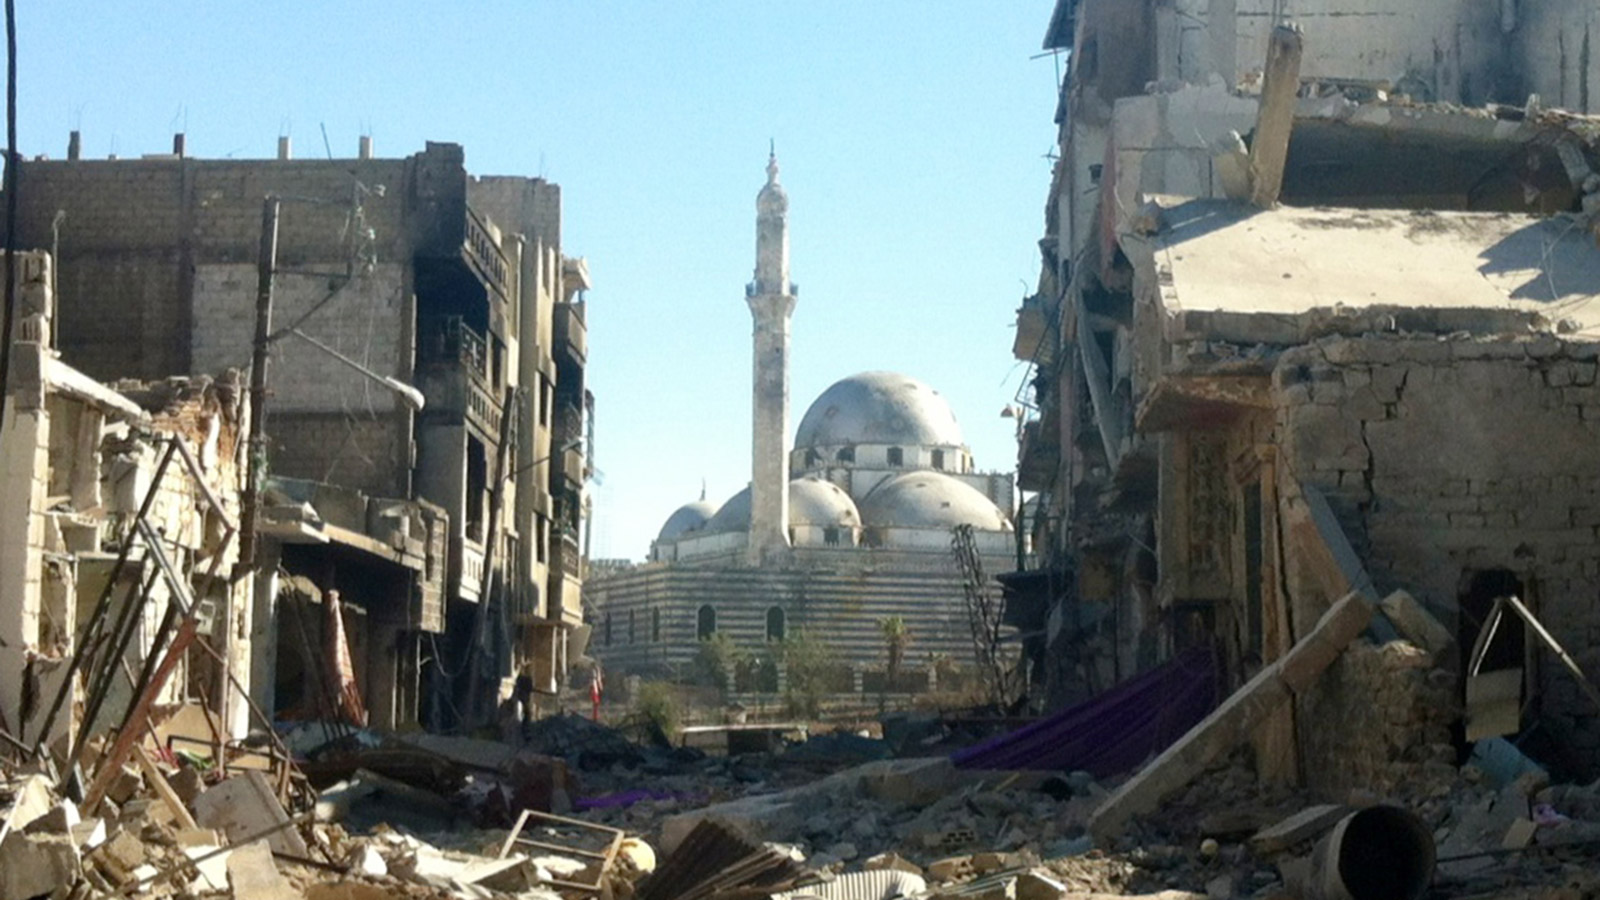 July 2013: Damaged buildings in front of the Khaled bin Walid mosque in the central Syrian city of Homs. (Sam Skaine, Getty)